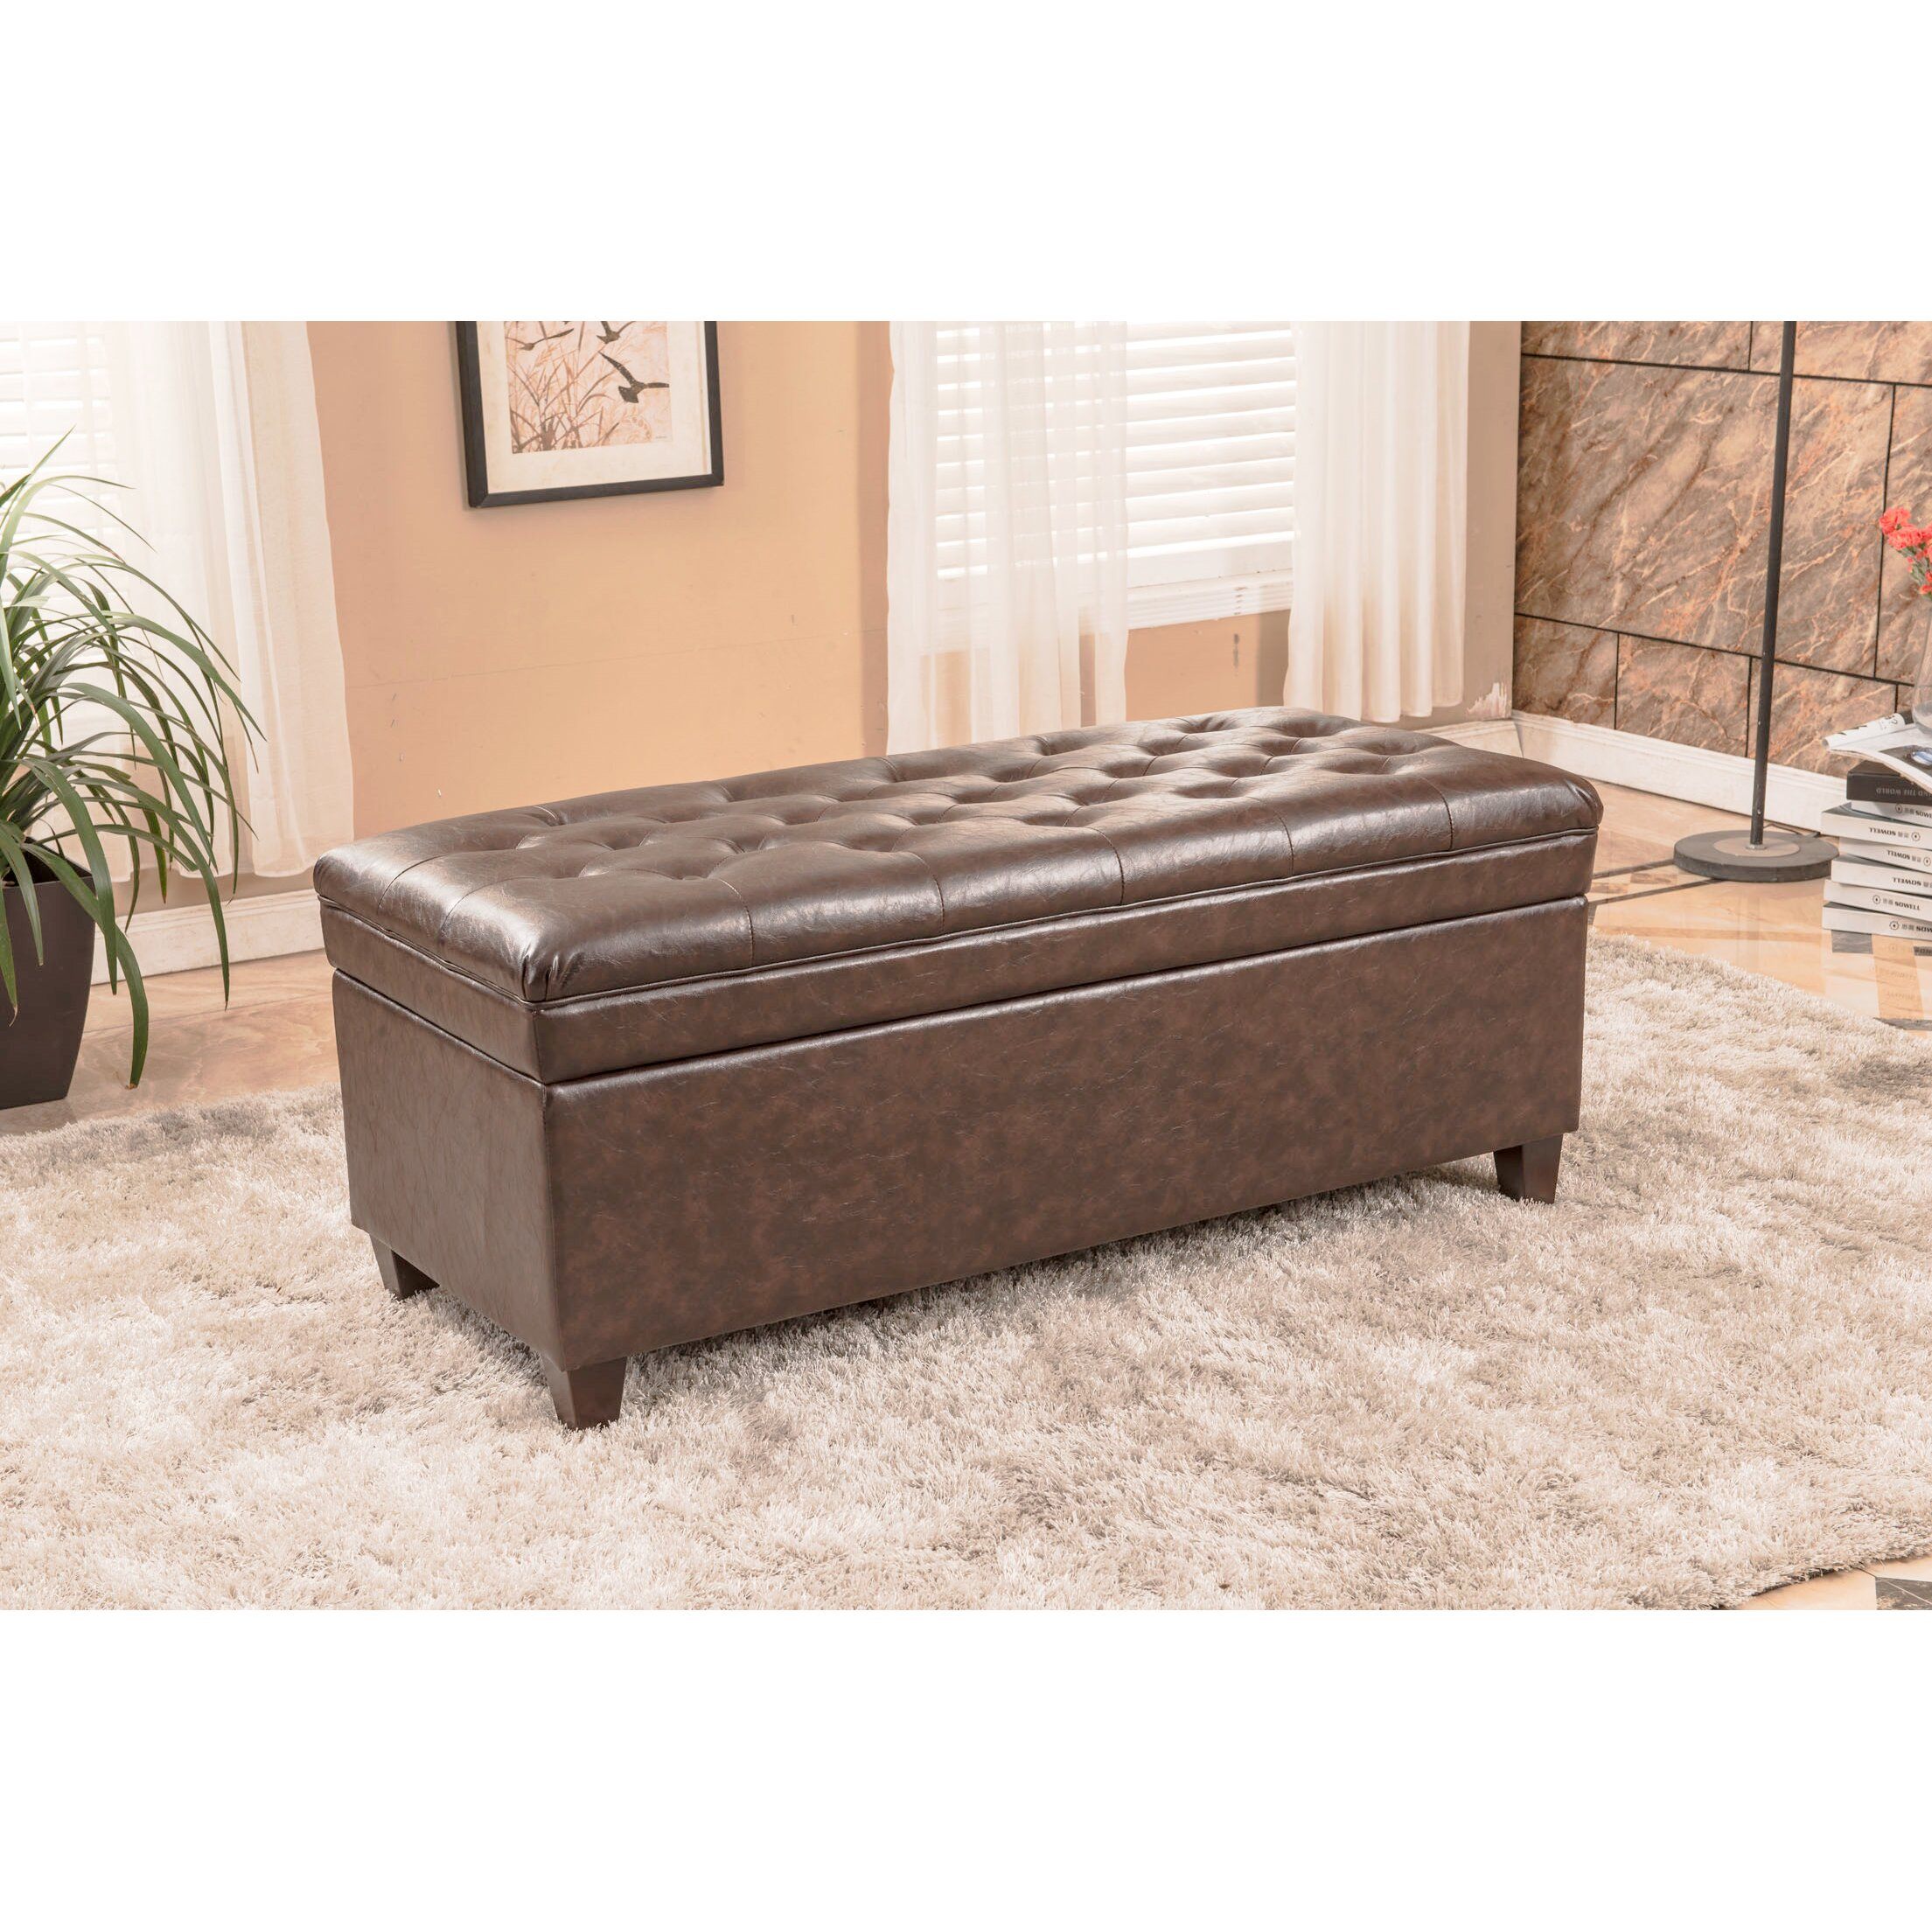 bellasario collection upholstered storage bedroom bench reviews wayfair. Black Bedroom Furniture Sets. Home Design Ideas